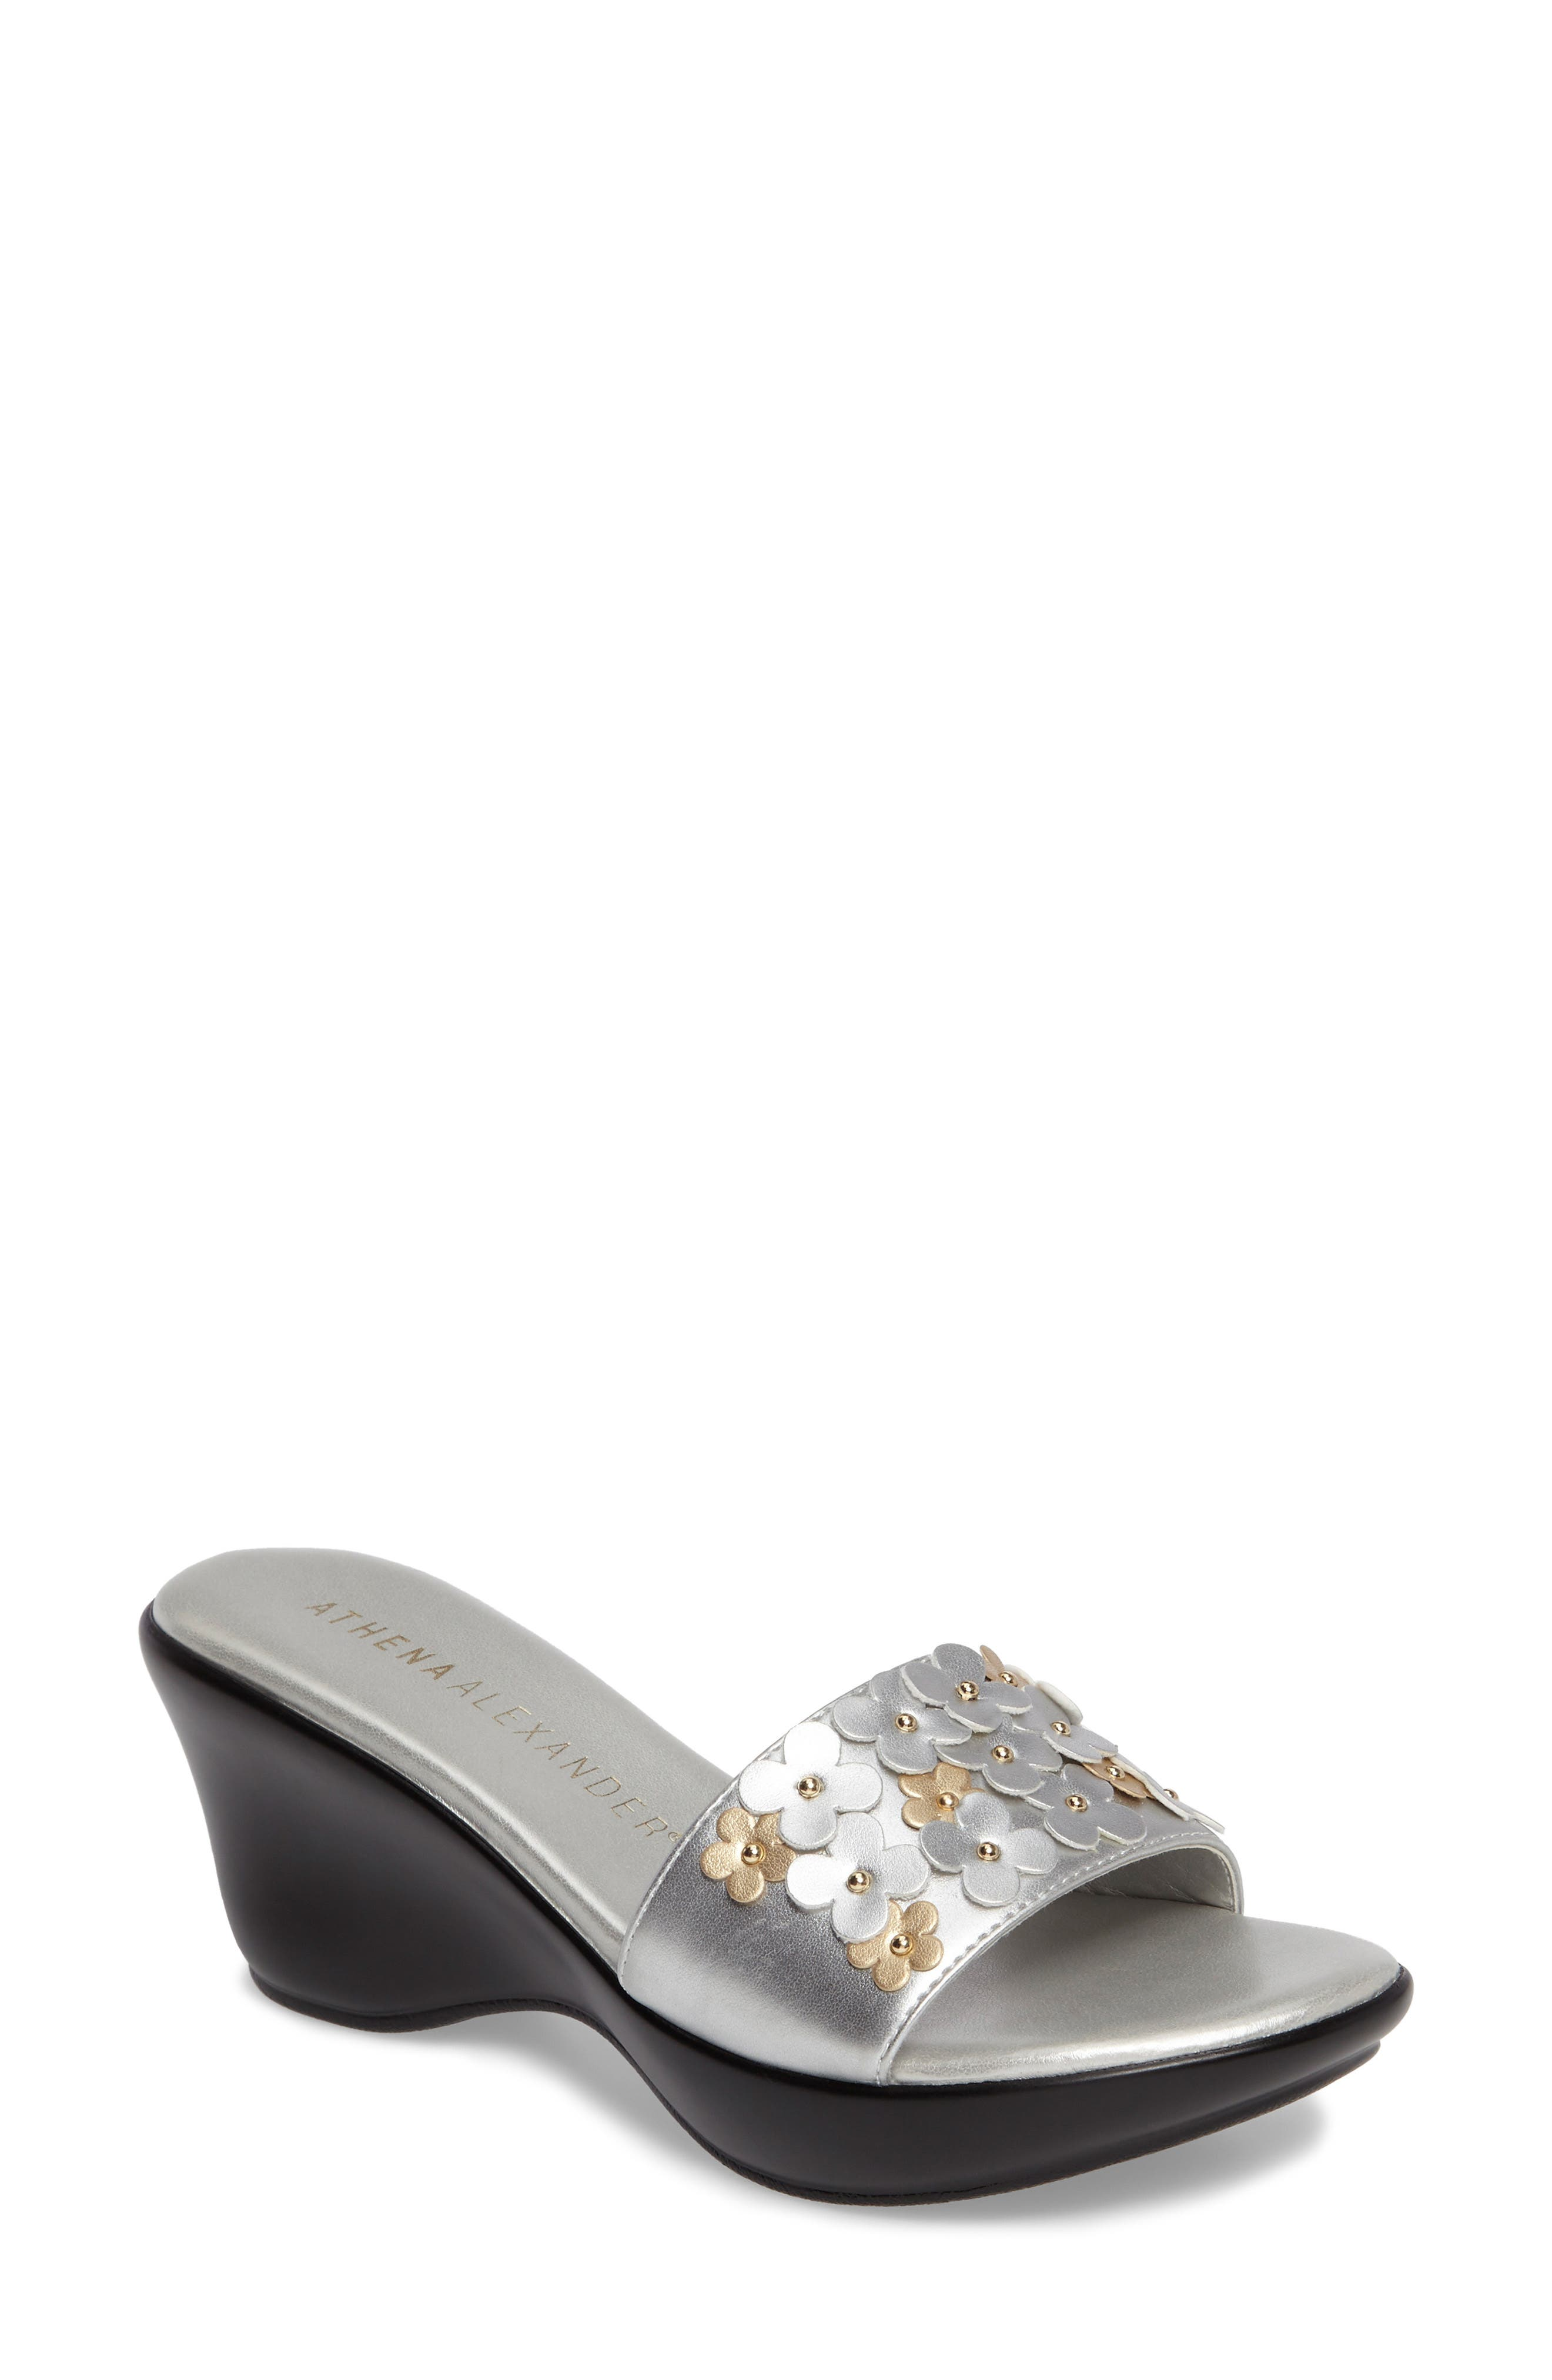 Athena Alexander Allegra Wedge Slide (Women)